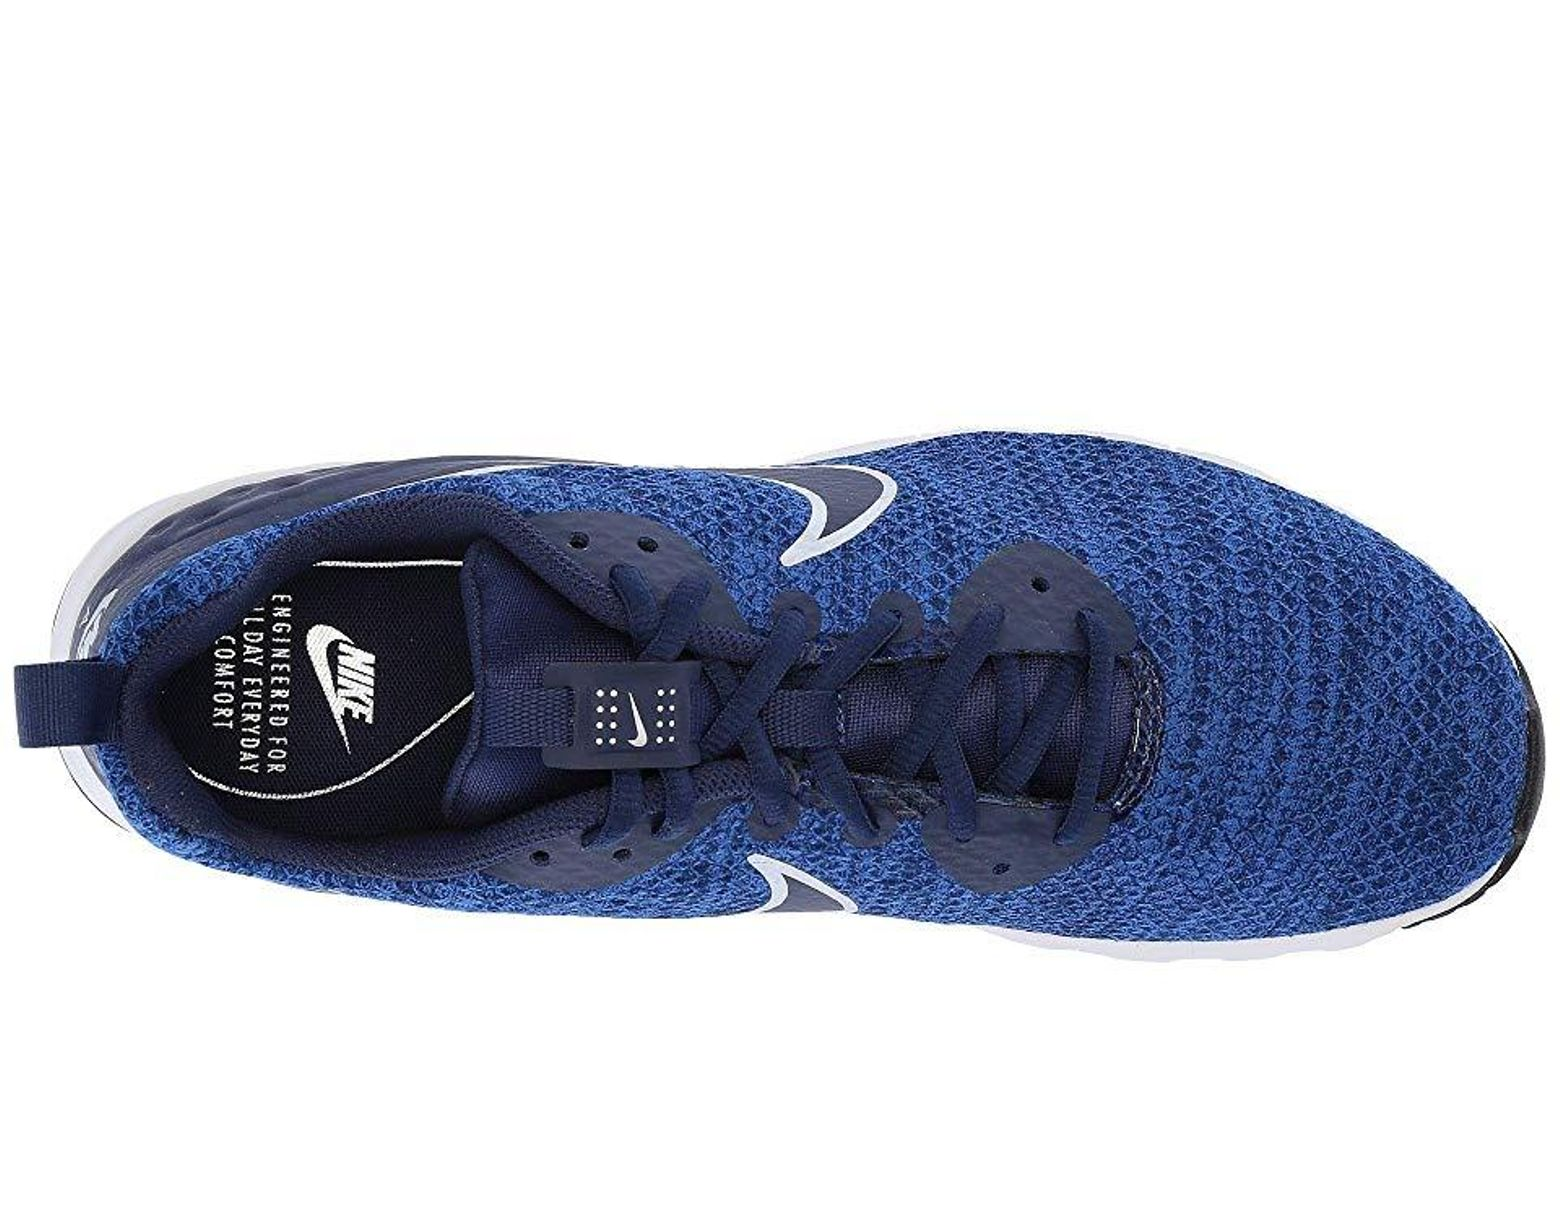 c39a35cb51 Nike Air Max Motion Lw Le (midnight Navy/midnight Navy/gym Blue) Shoes in  Blue for Men - Save 18% - Lyst